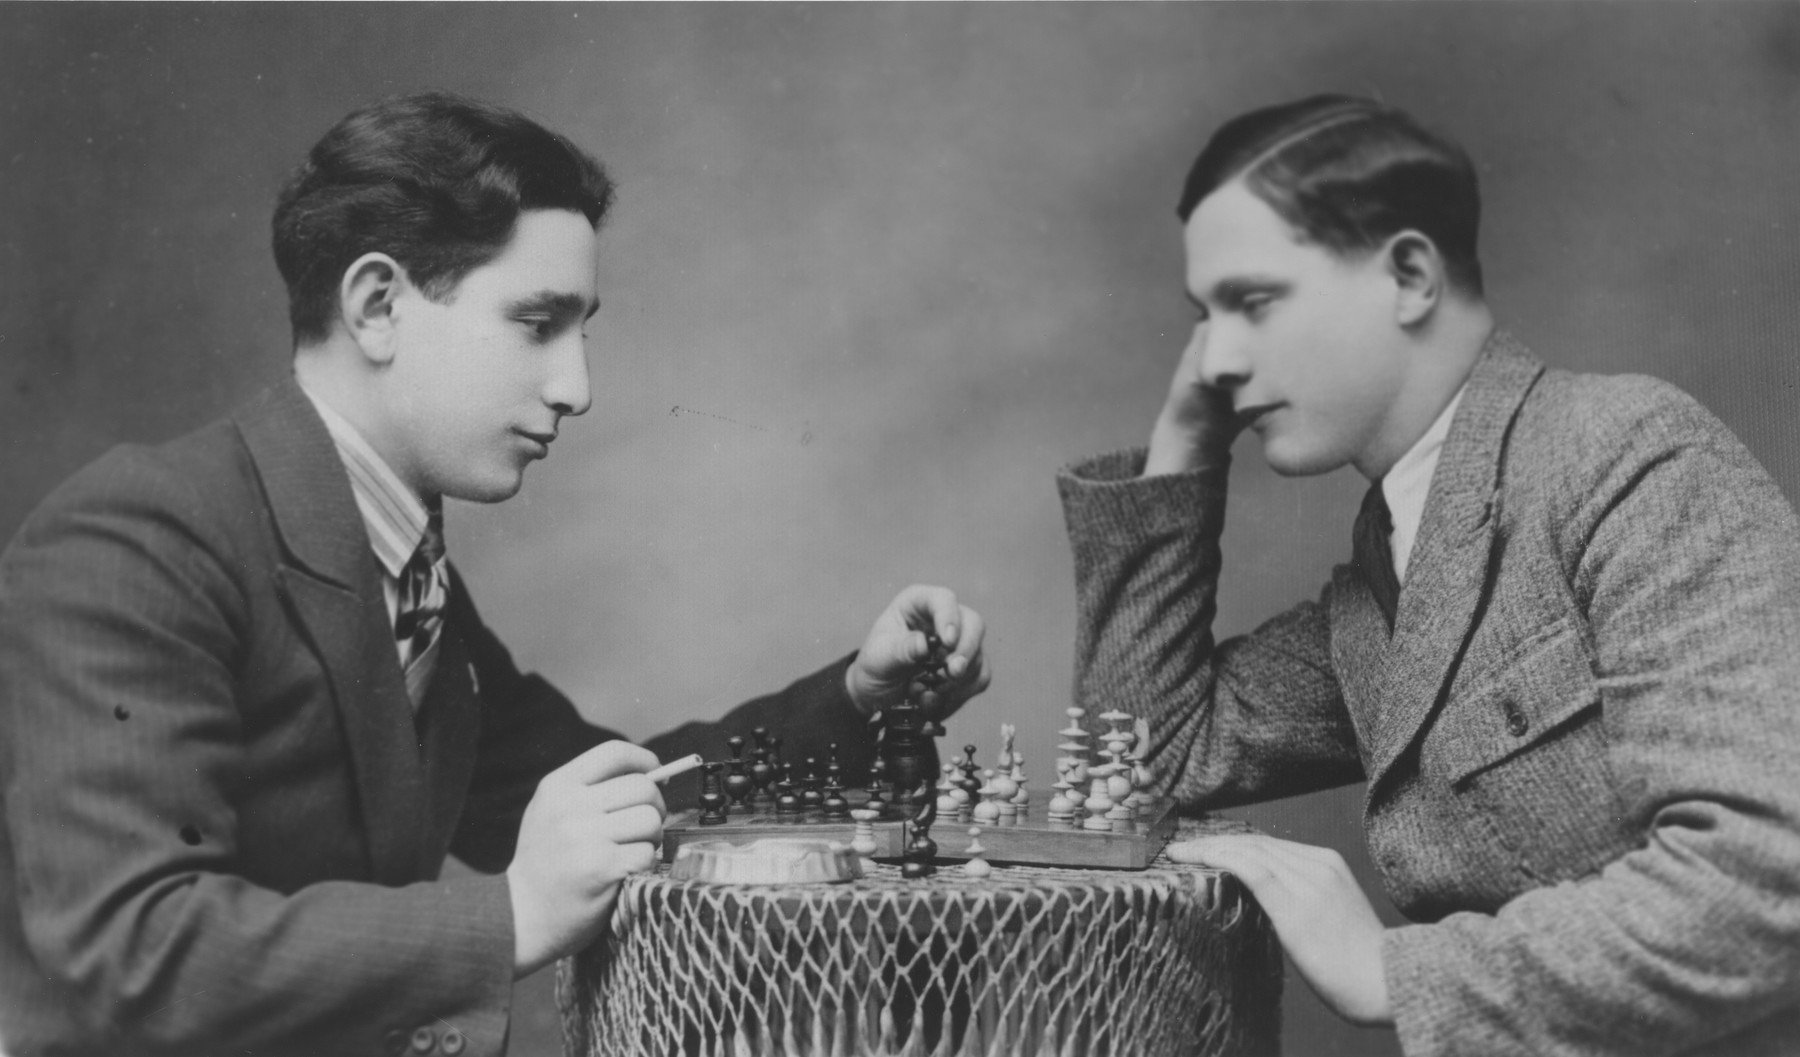 Two Jewish brothers play a game of chess in their home in Tomaszow Lubelski, Poland.  Pictured from left to right are Shmuel (Miles) and Yona Lerman.